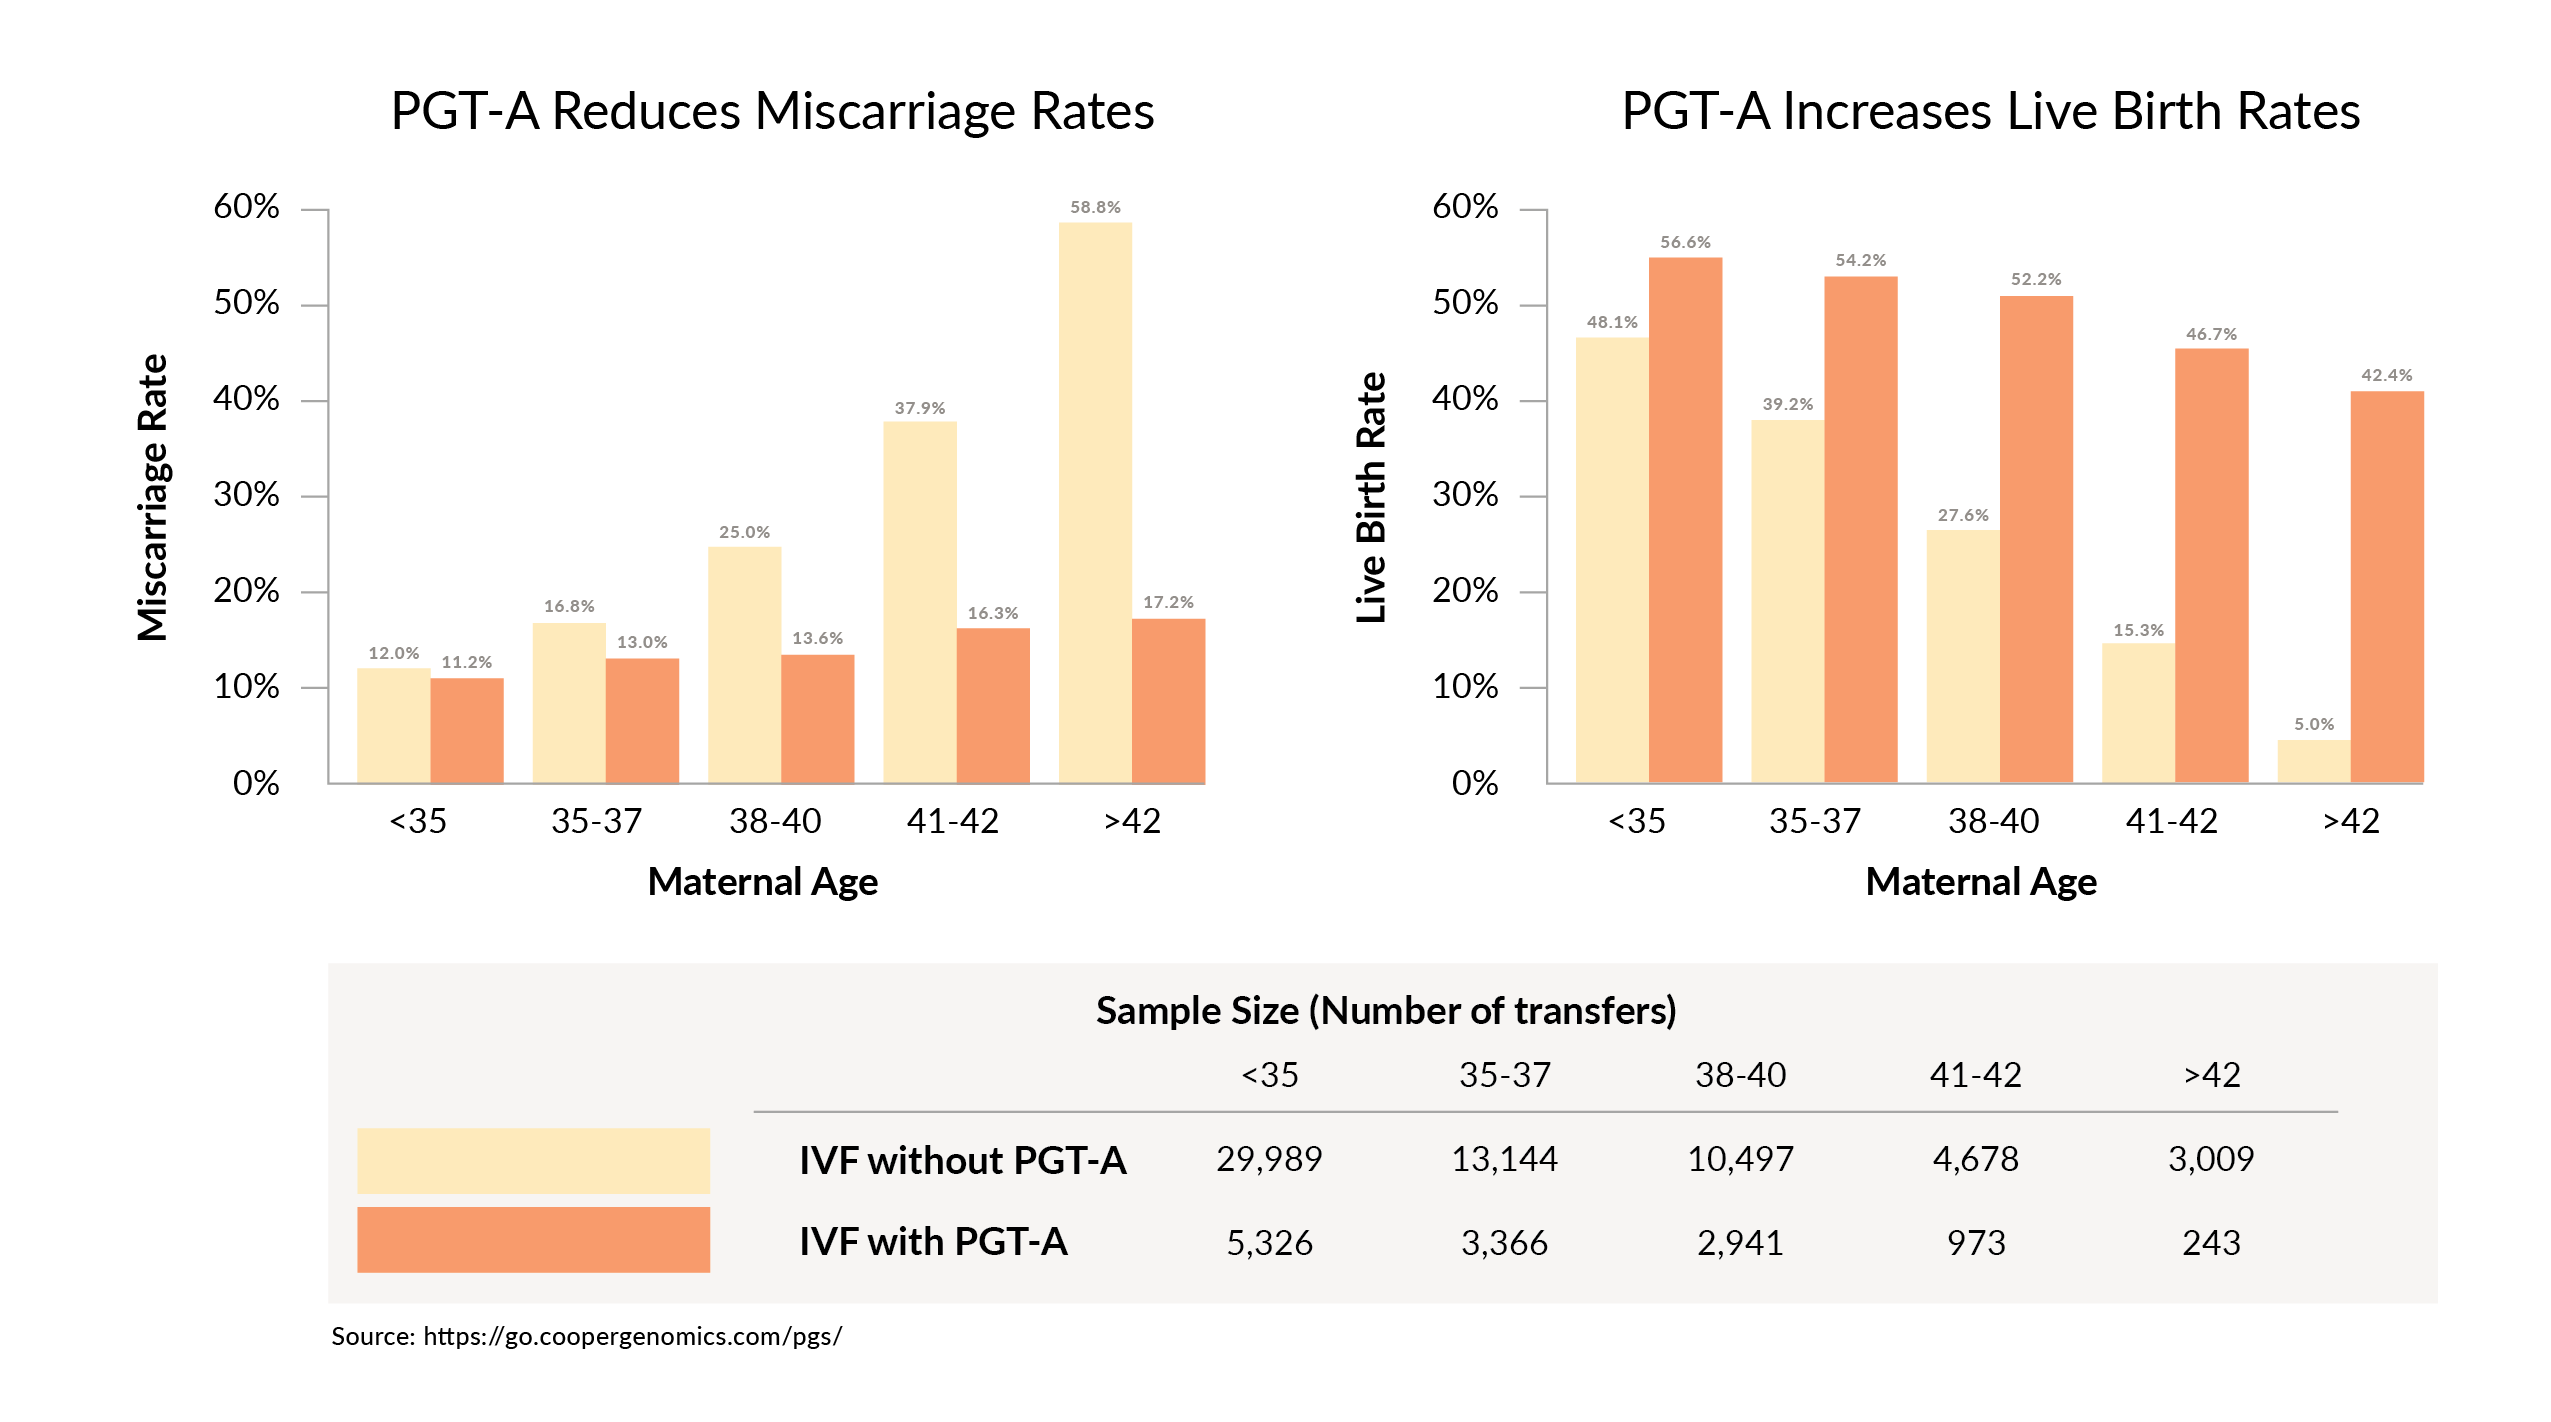 Use of PGT-A reduces miscarriage rates and increases live birth rates